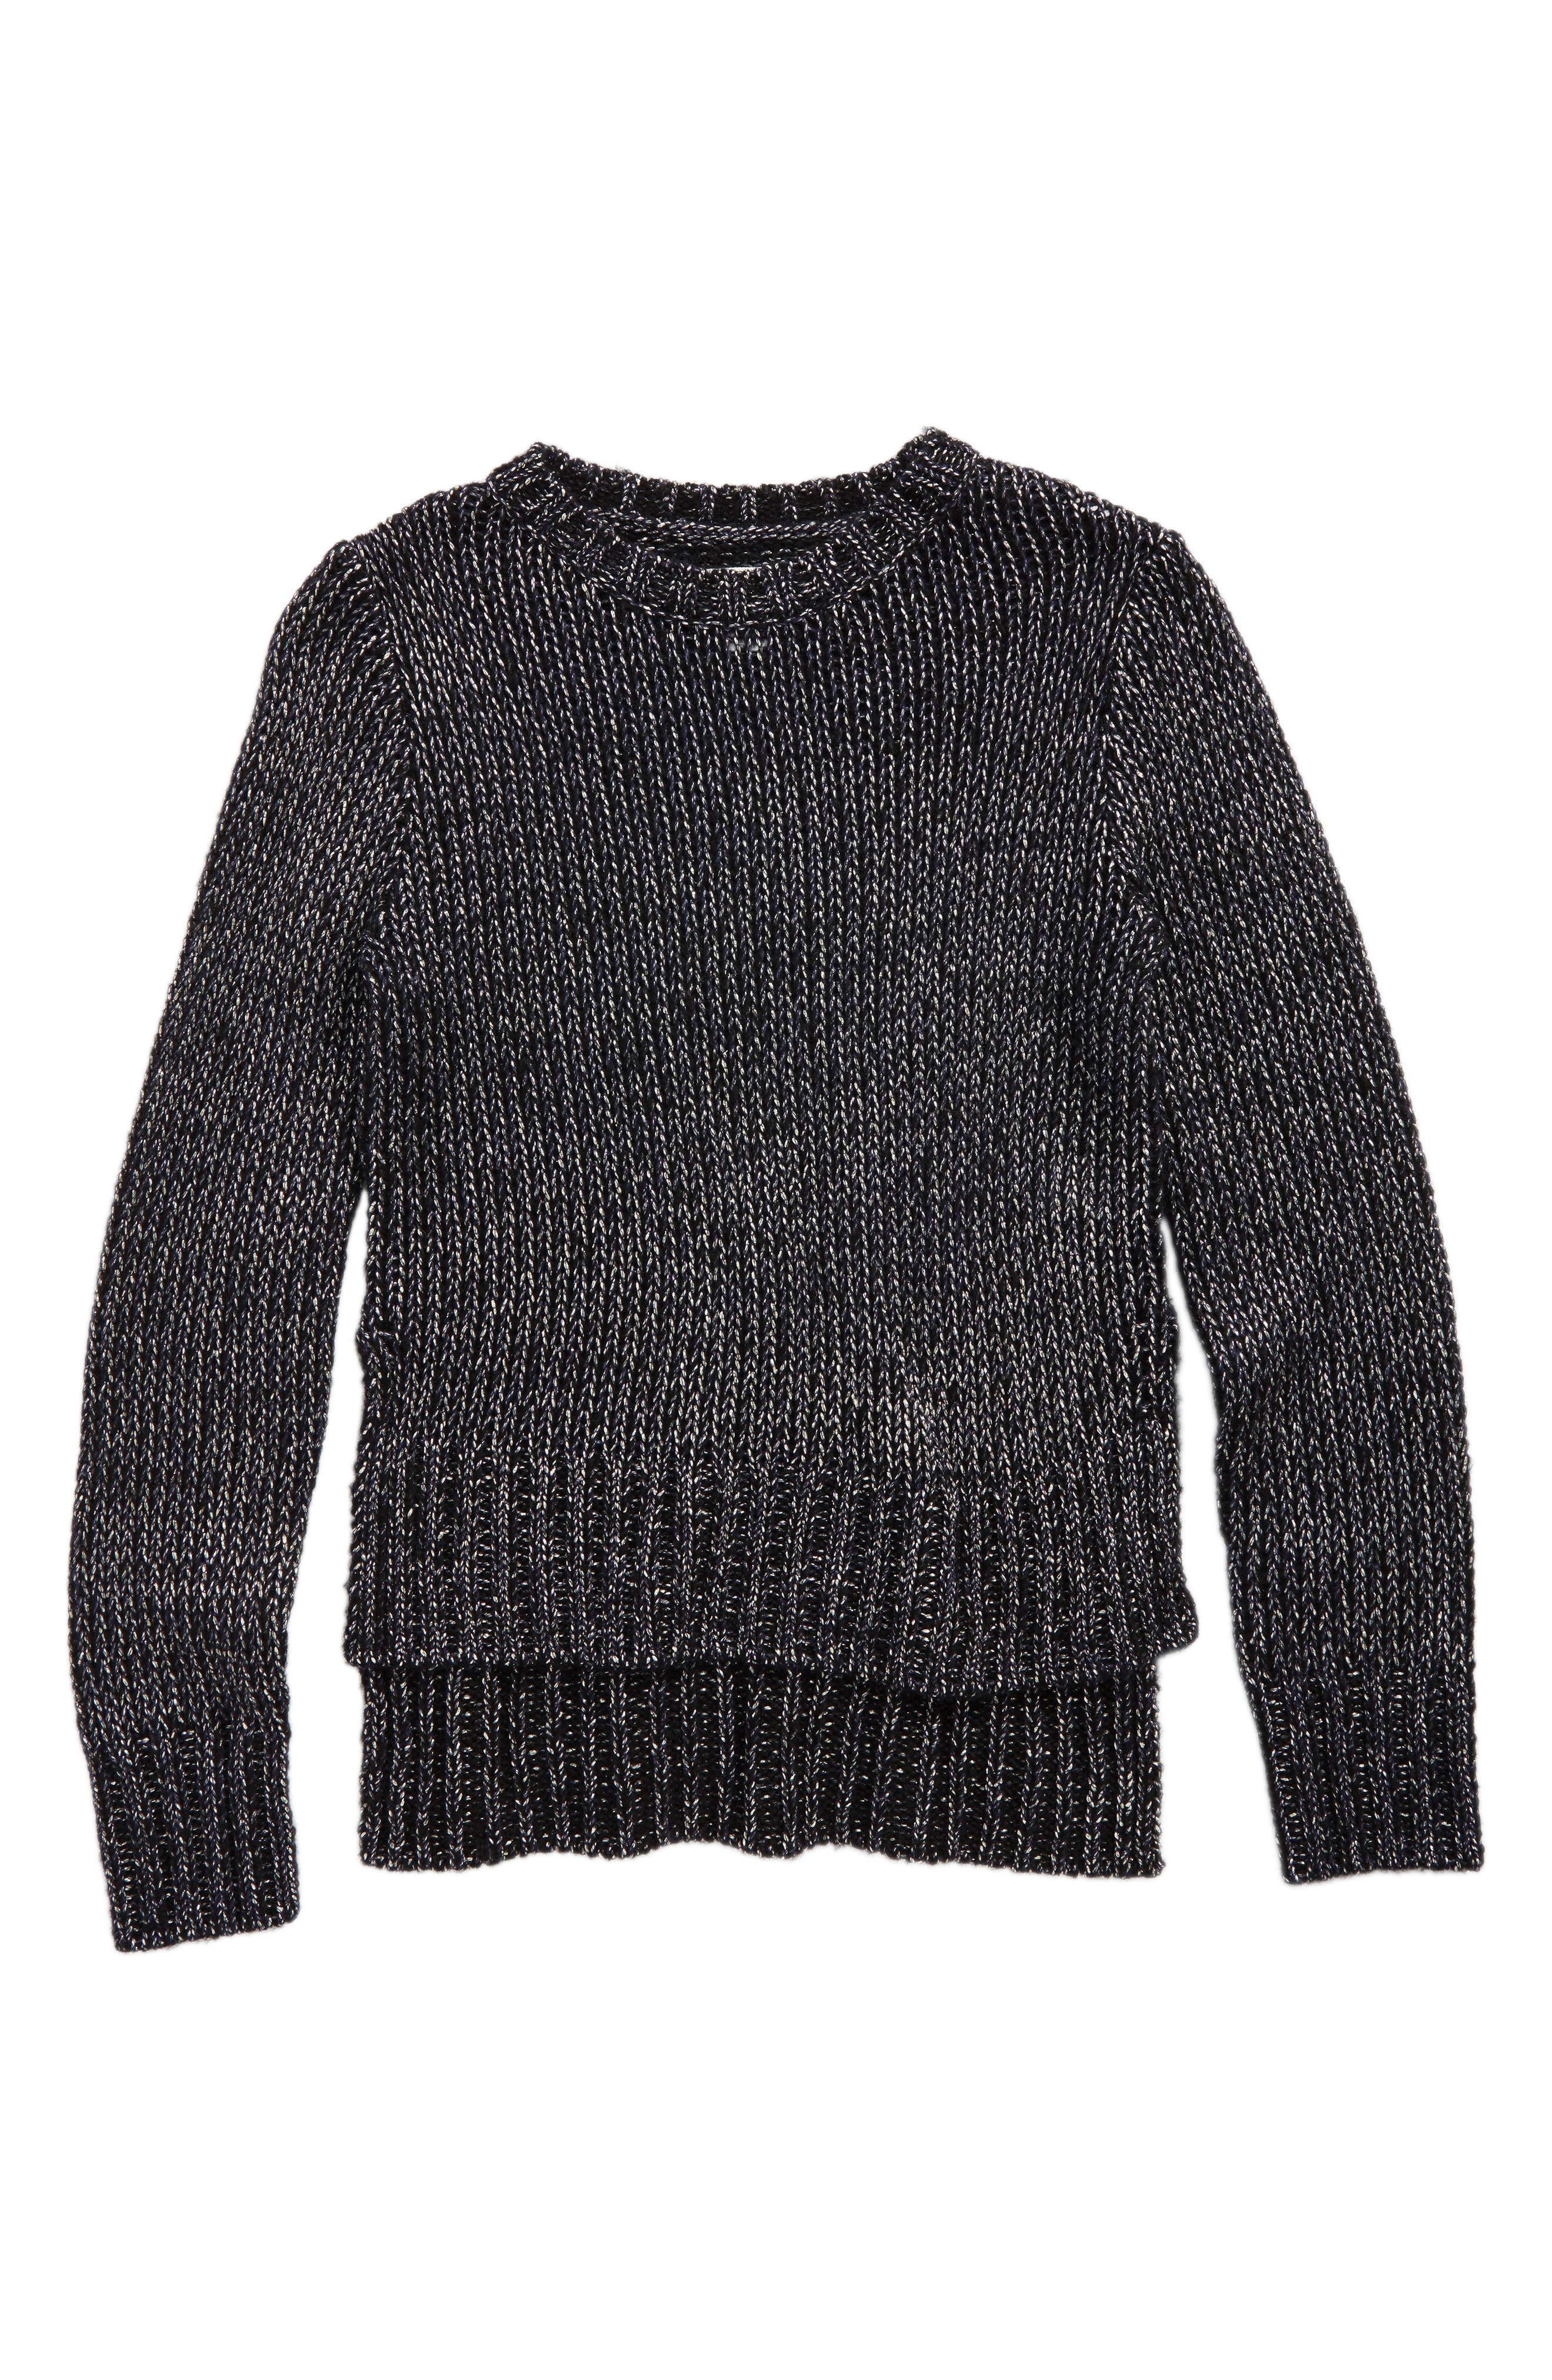 Metallic Sweater,                         Main,                         color, 001